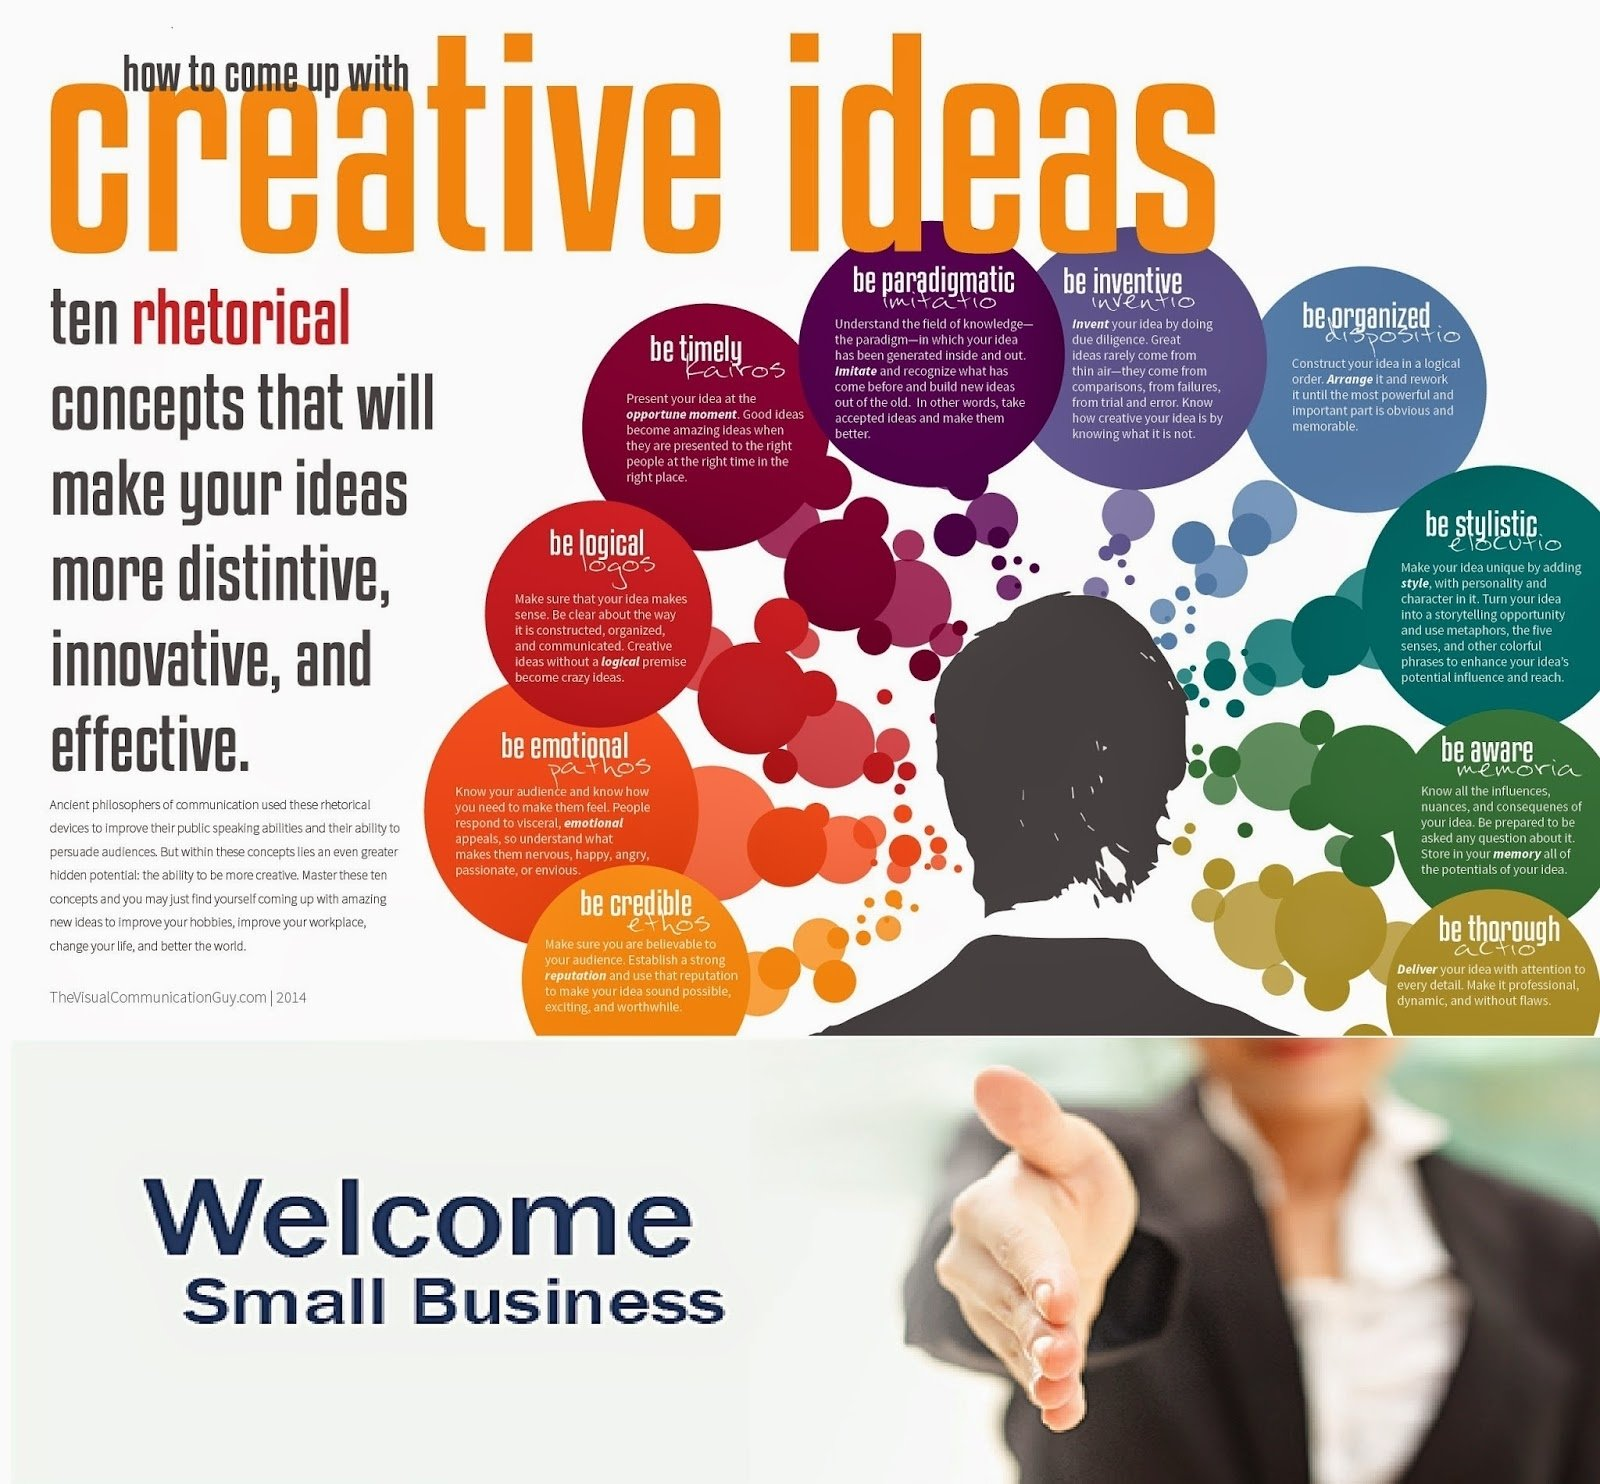 10 Fantastic Up And Coming Business Ideas simple creative ideas and strategies for starting small business 2021